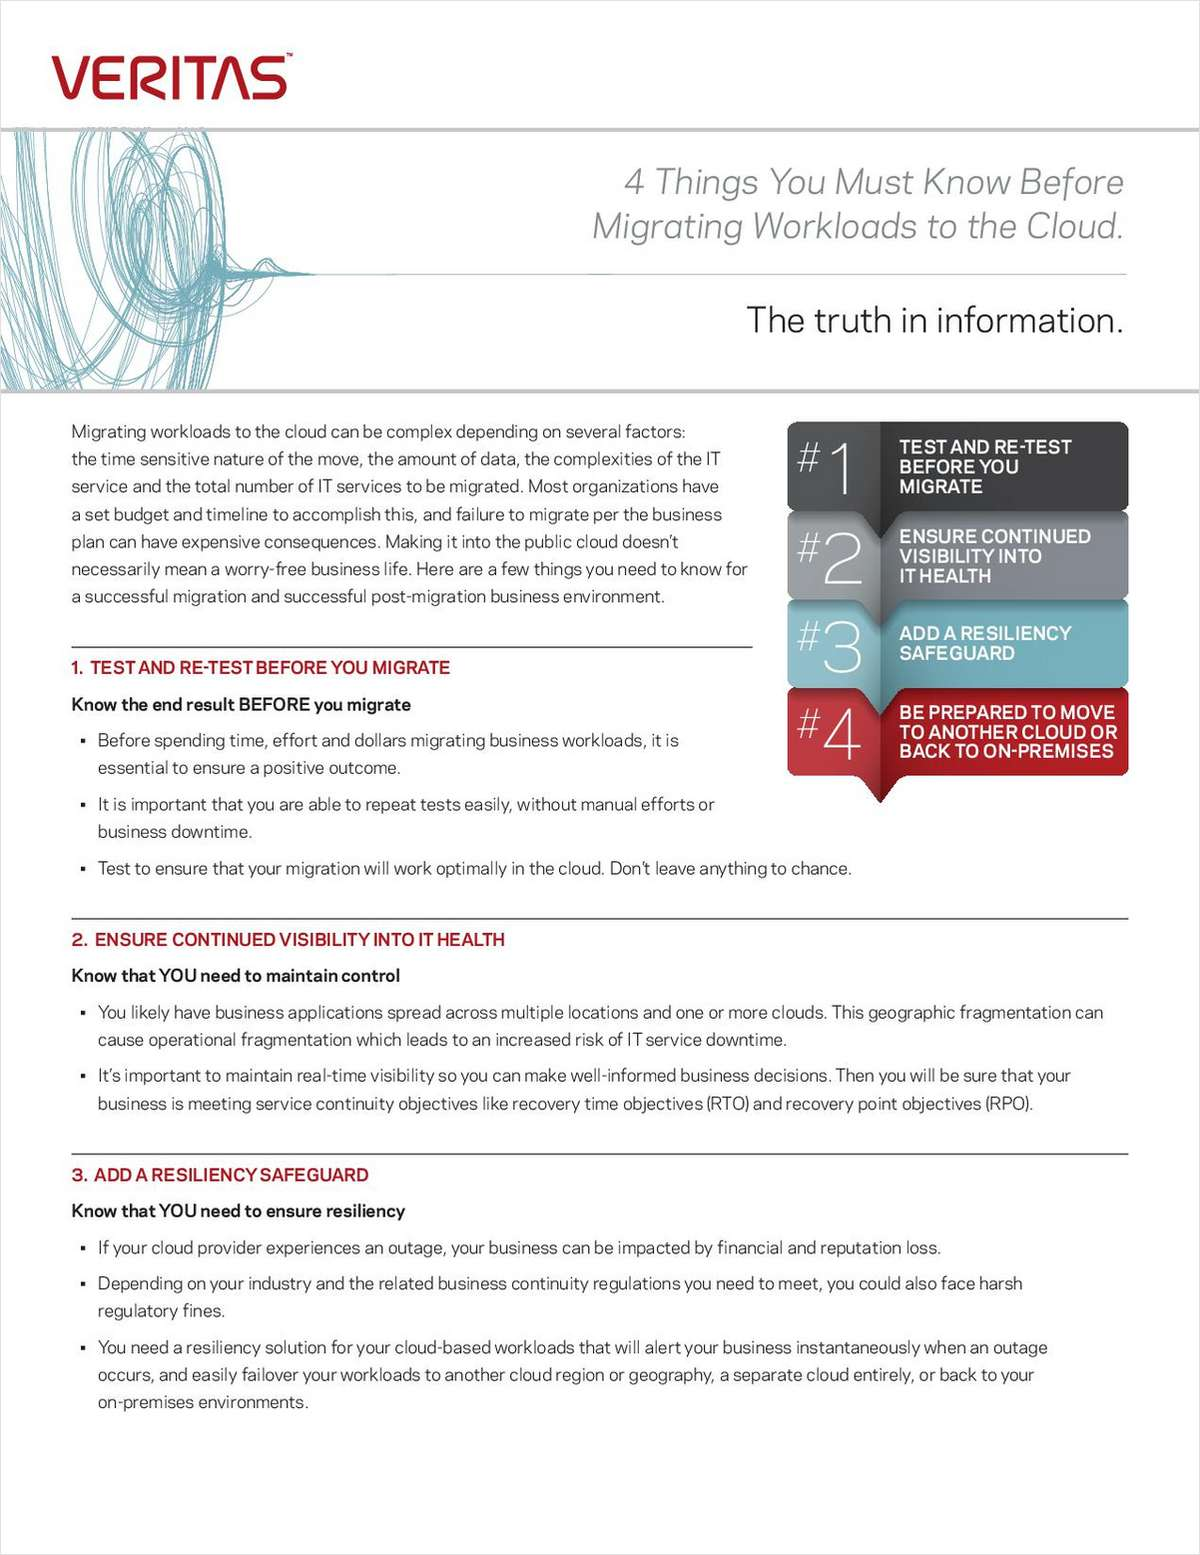 4 Things You Must Know Before Migrating Workloads to the Cloud